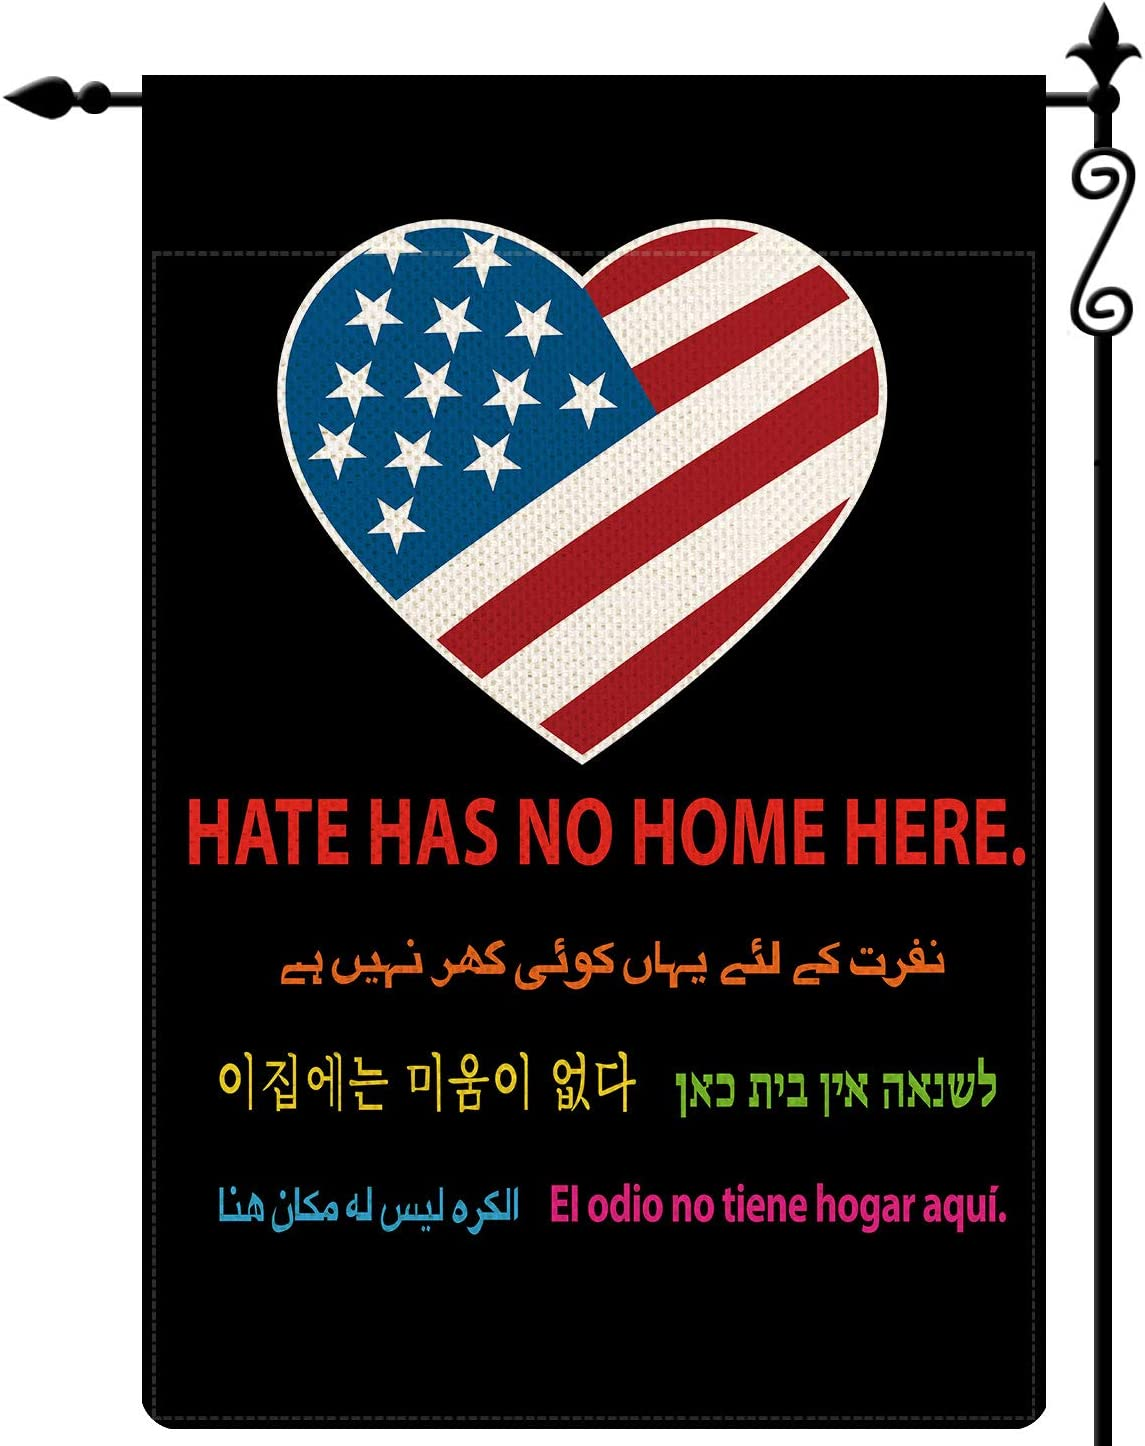 WHOO Hate Has No Home Here Garden Flag American Flag Patriotic Stripes and Stars Flag Vertical Double Sided Rustic Farmland Buffalo Check Plaid Burlap Yard Lawn Outdoor Decor 12.5x18 Inch